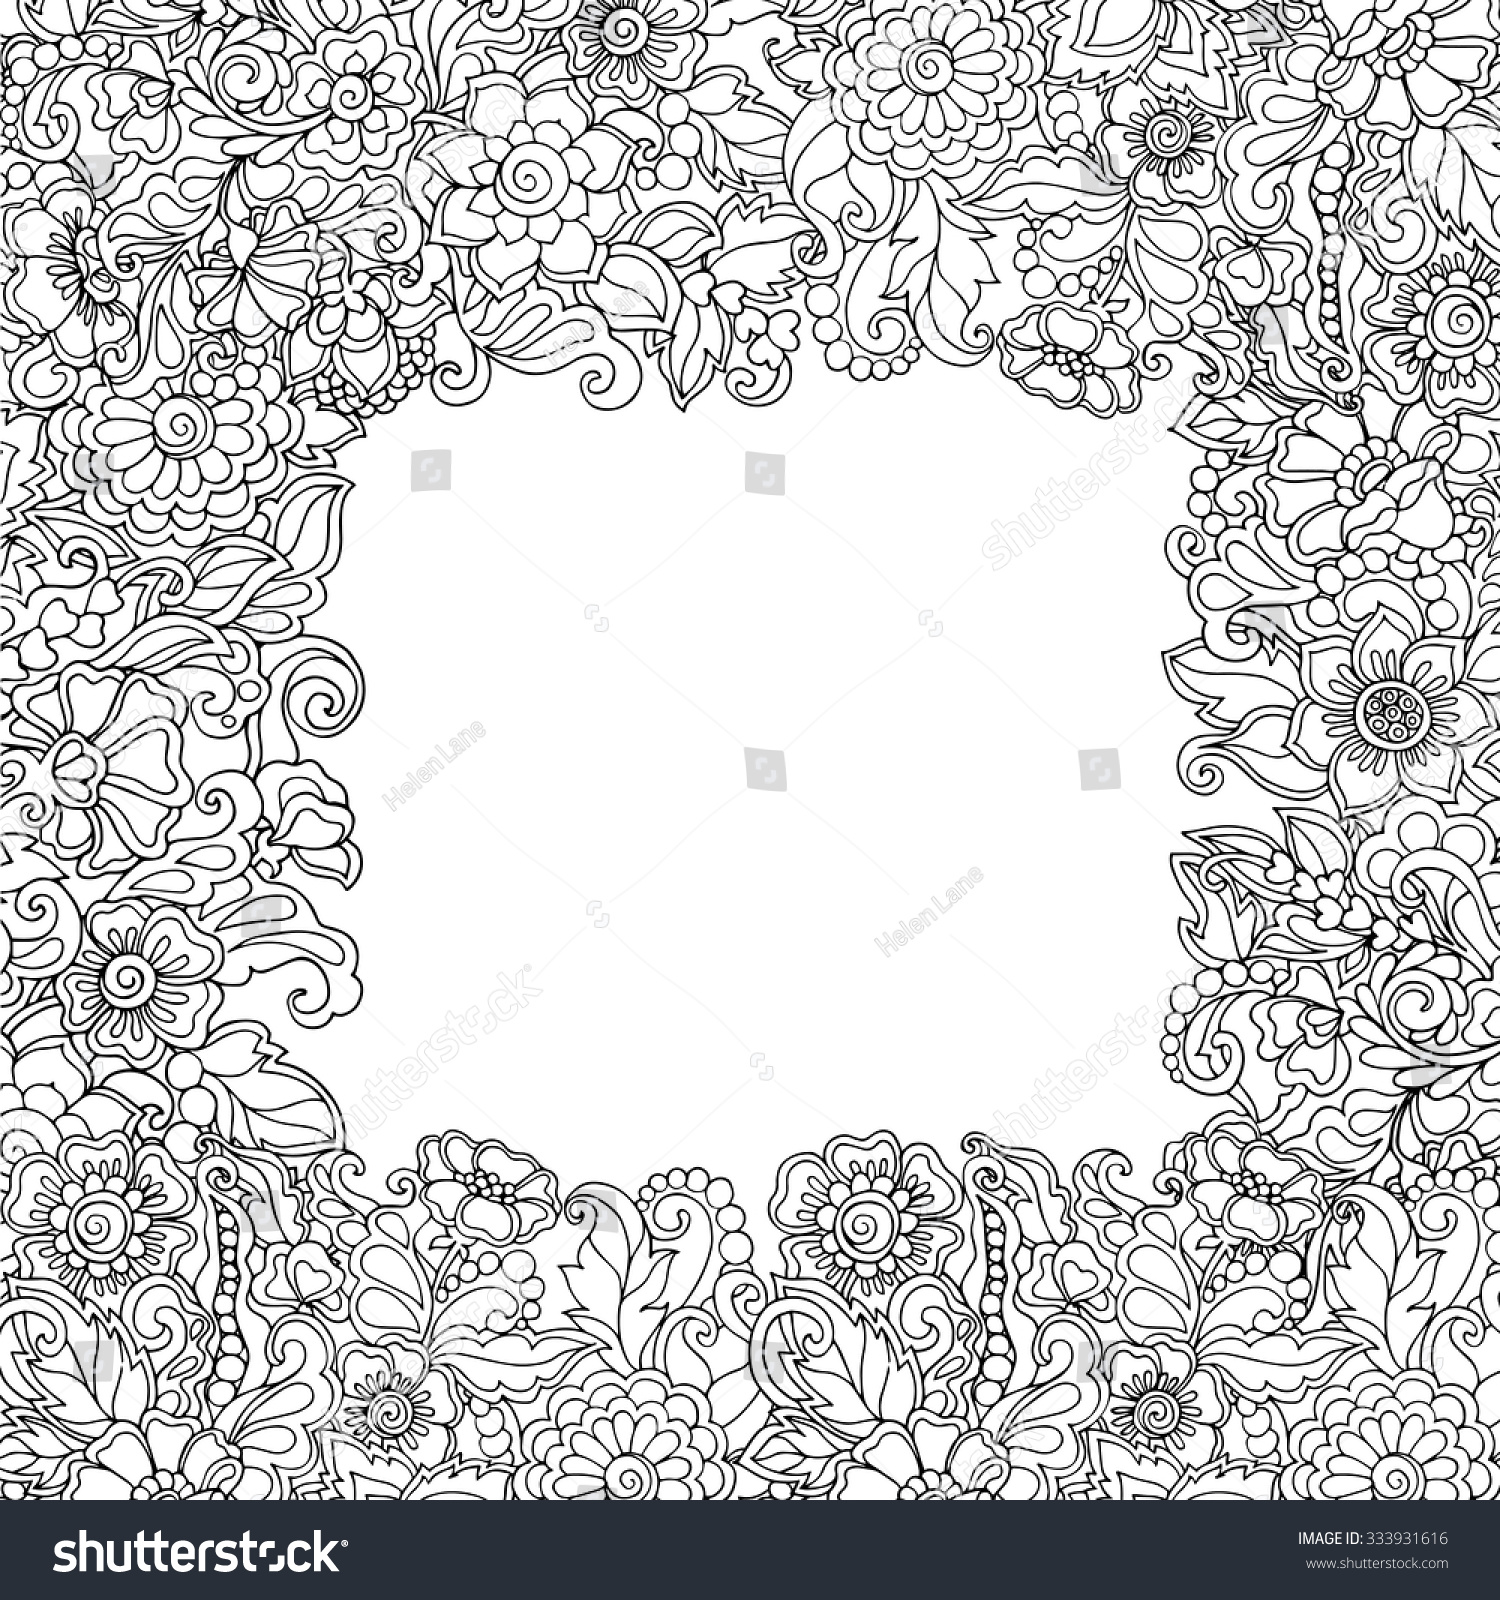 Coloring Pages Of Flowers For Older Kids